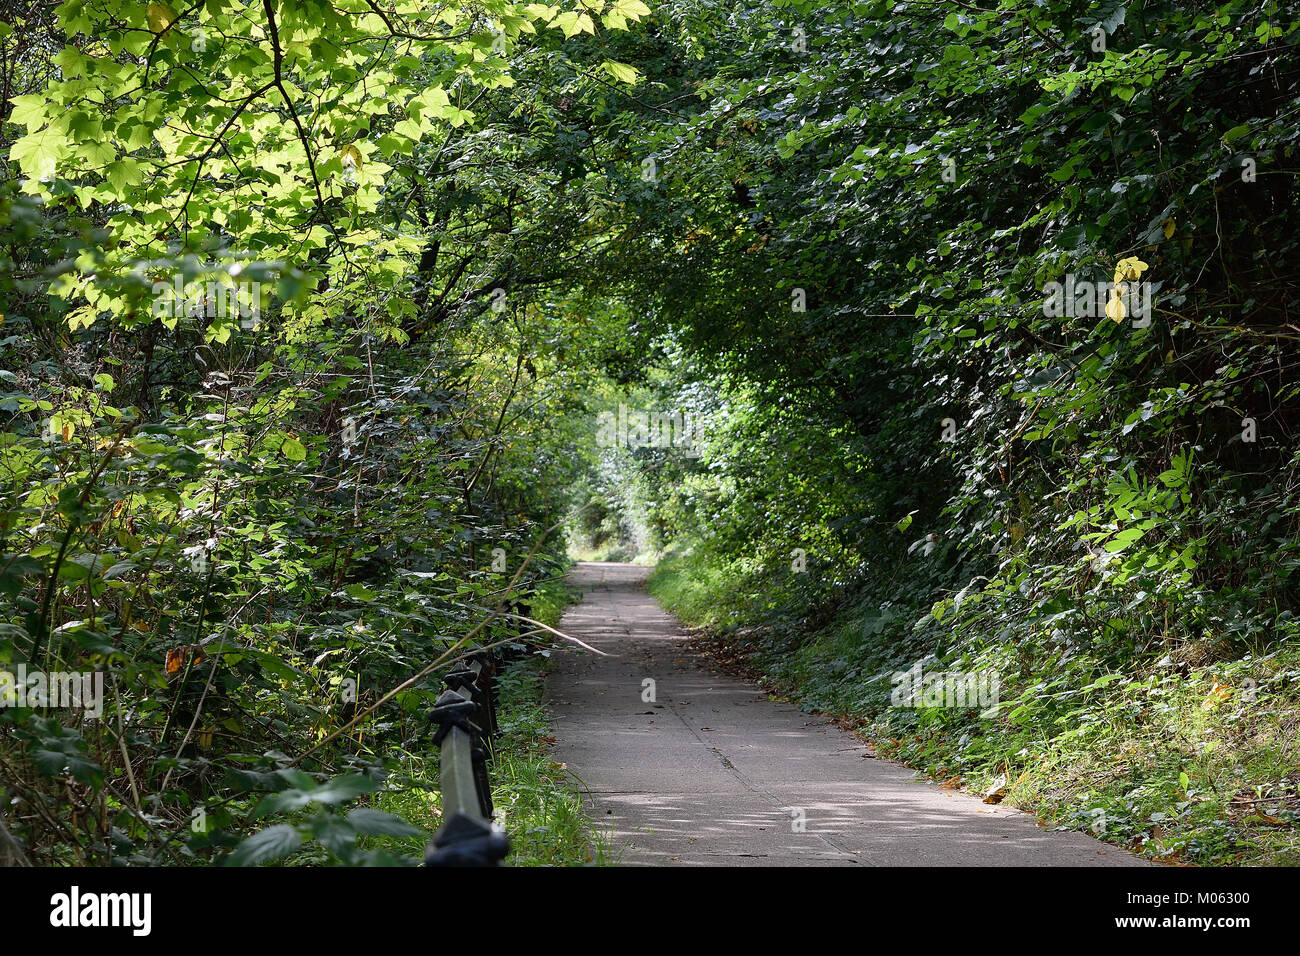 Vegetation tunnel, lonely road leading to light - Stock Image